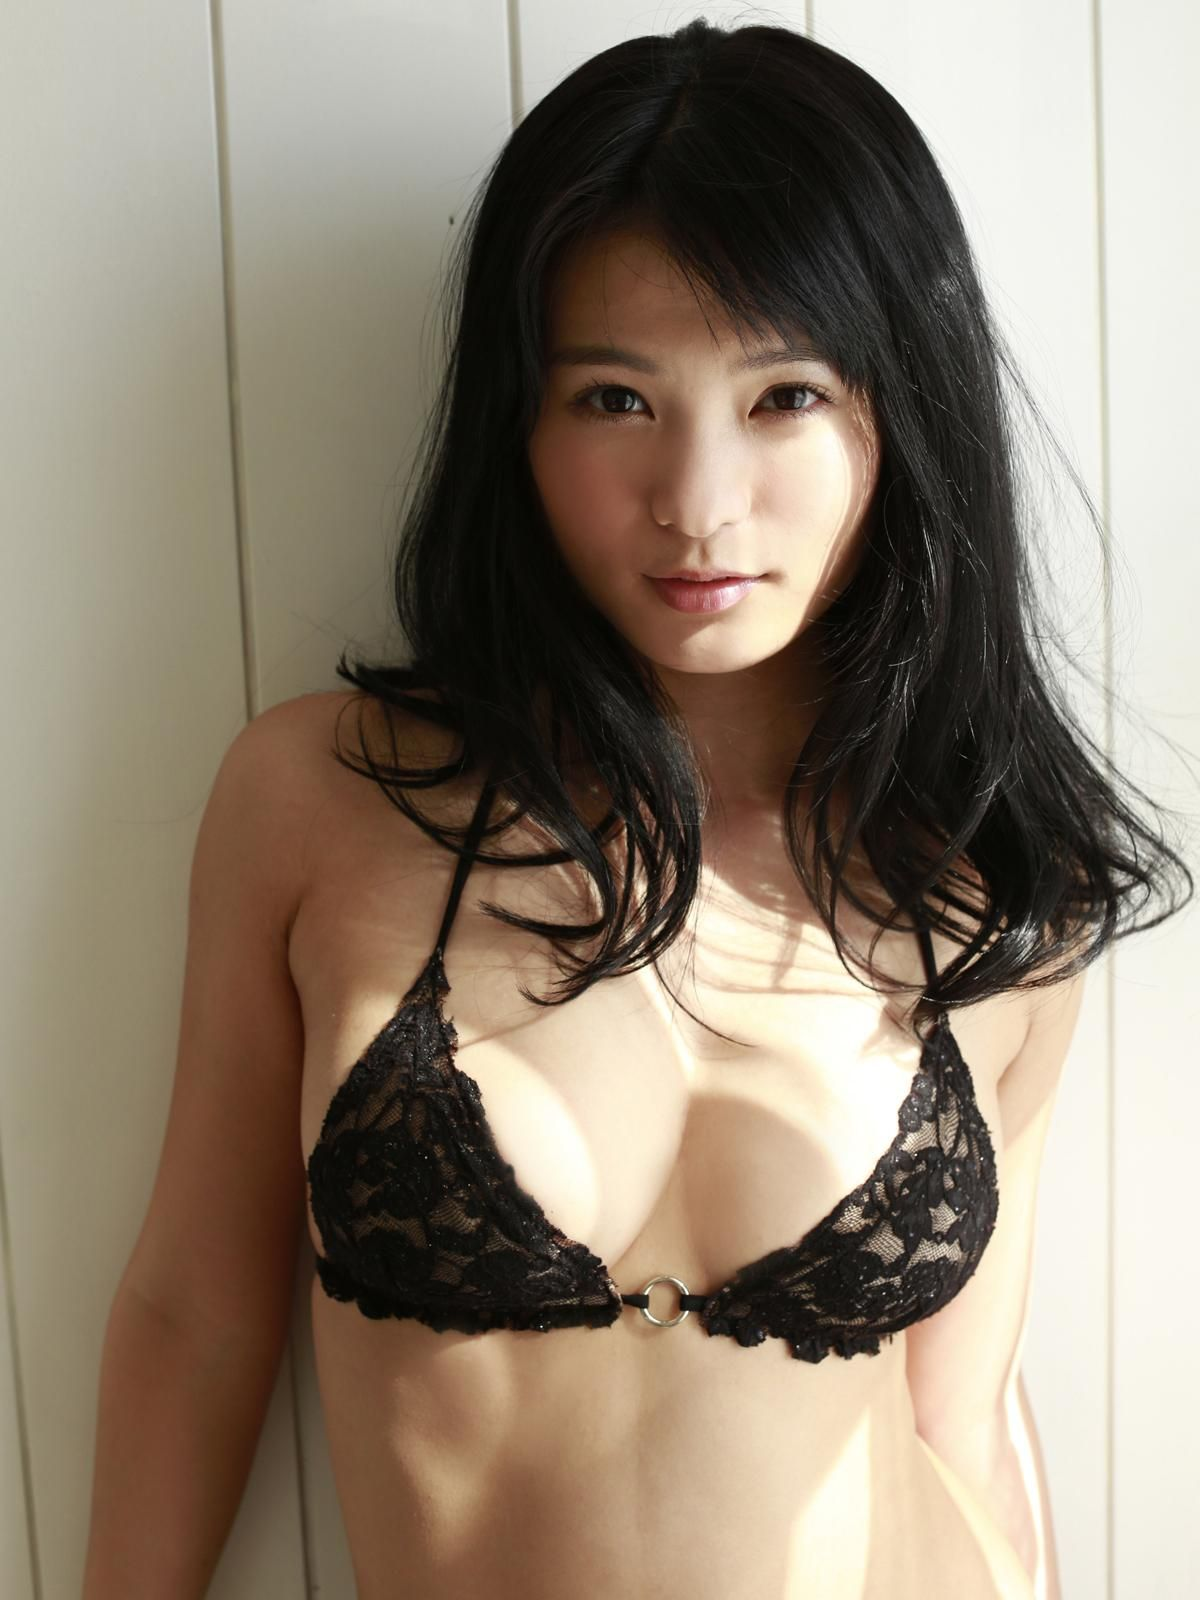 Lovely japanese model in black bikini for